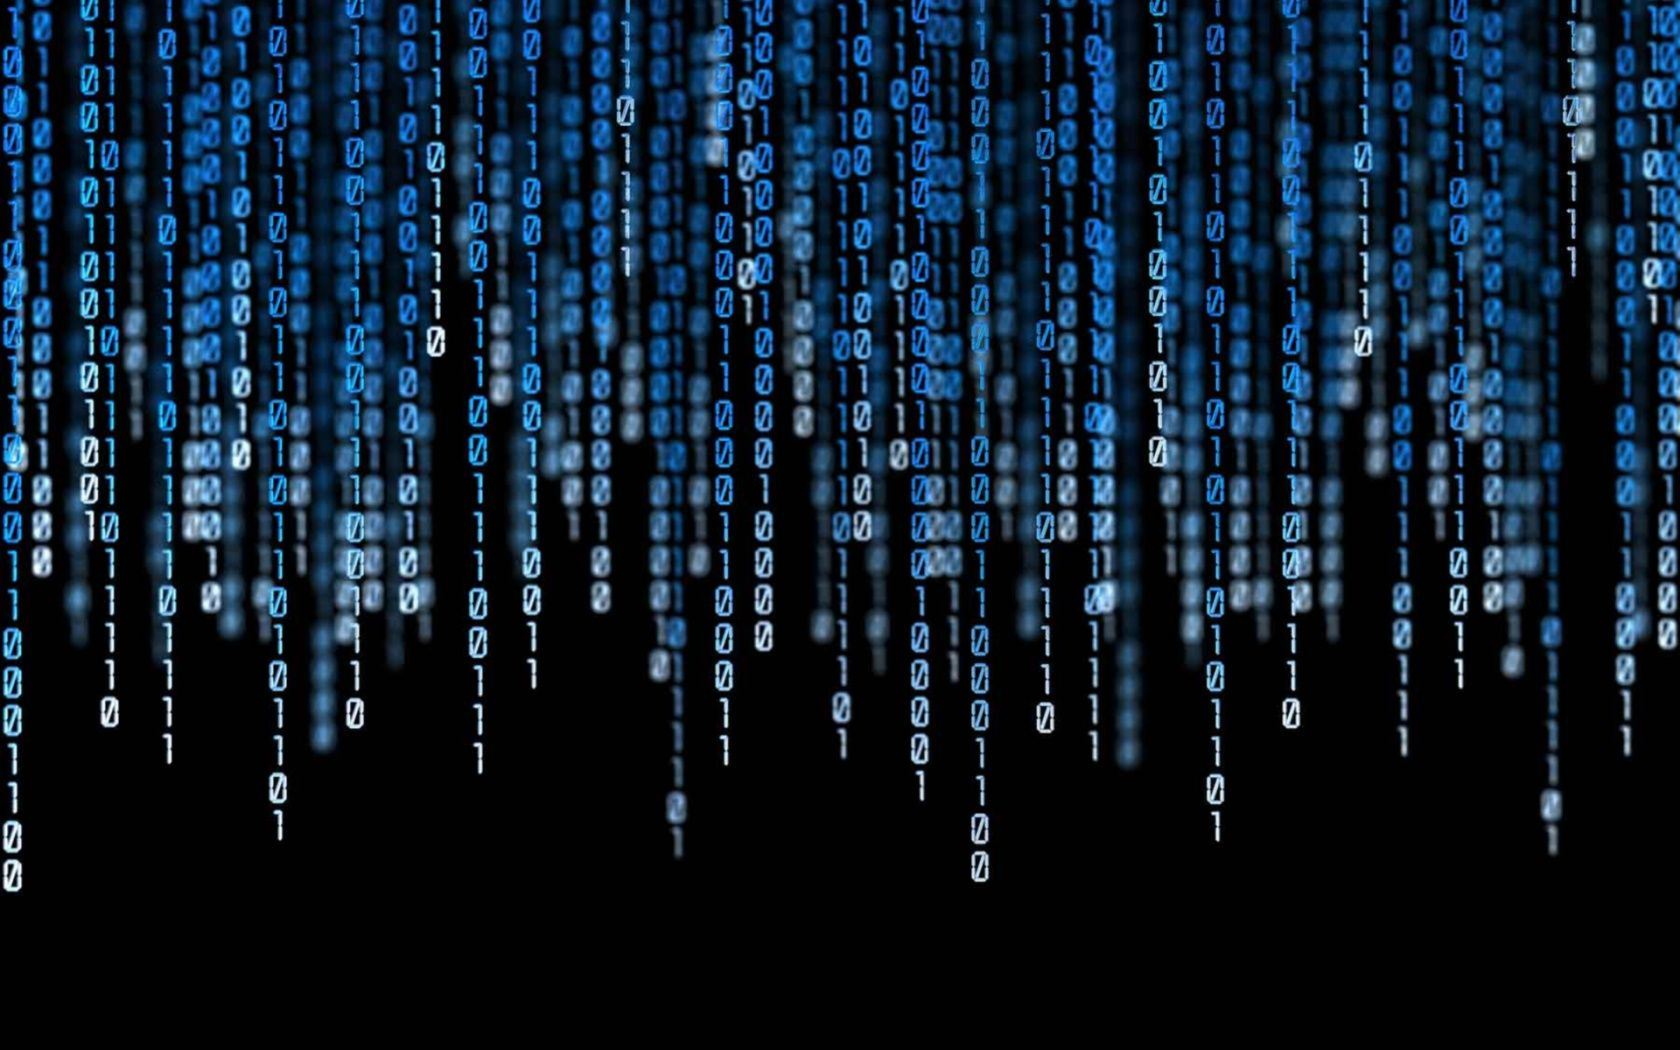 Blue Matrix Wallpapers Hd Sdeerwallpaper Technology Wallpaper Binary Code Coding